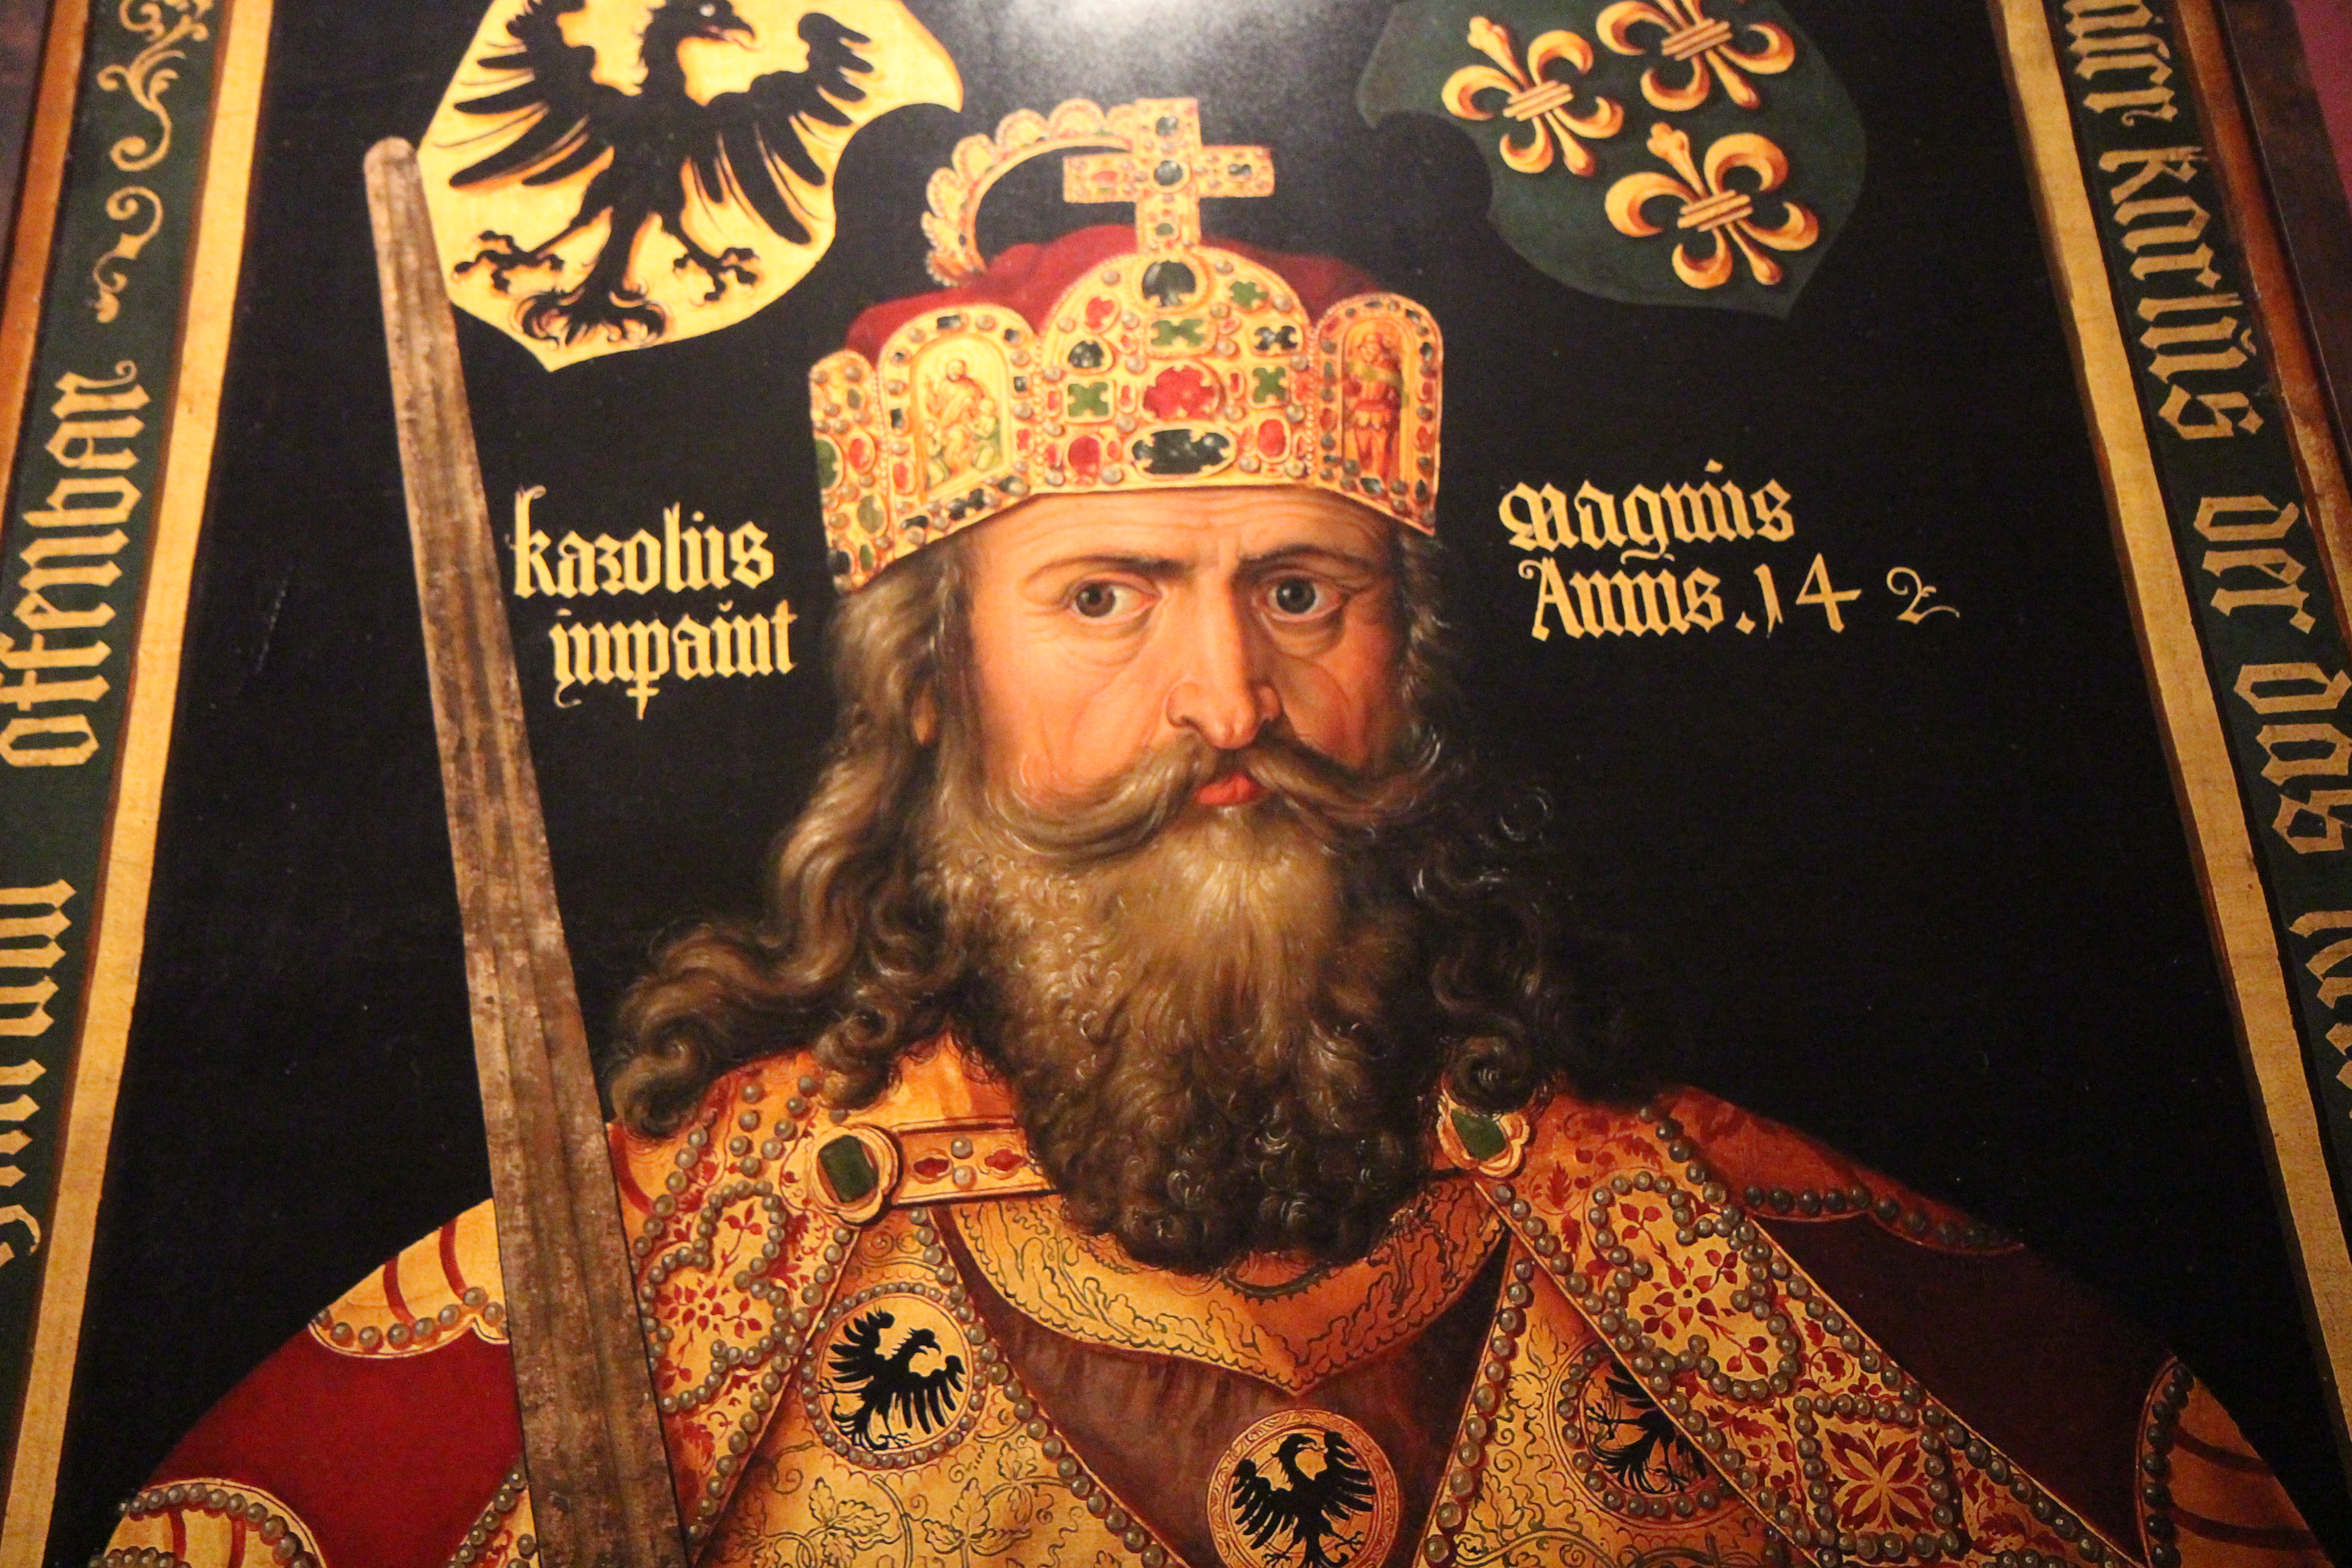 First Emperor of The Holy Roman Empire For The Holy Roman Empire